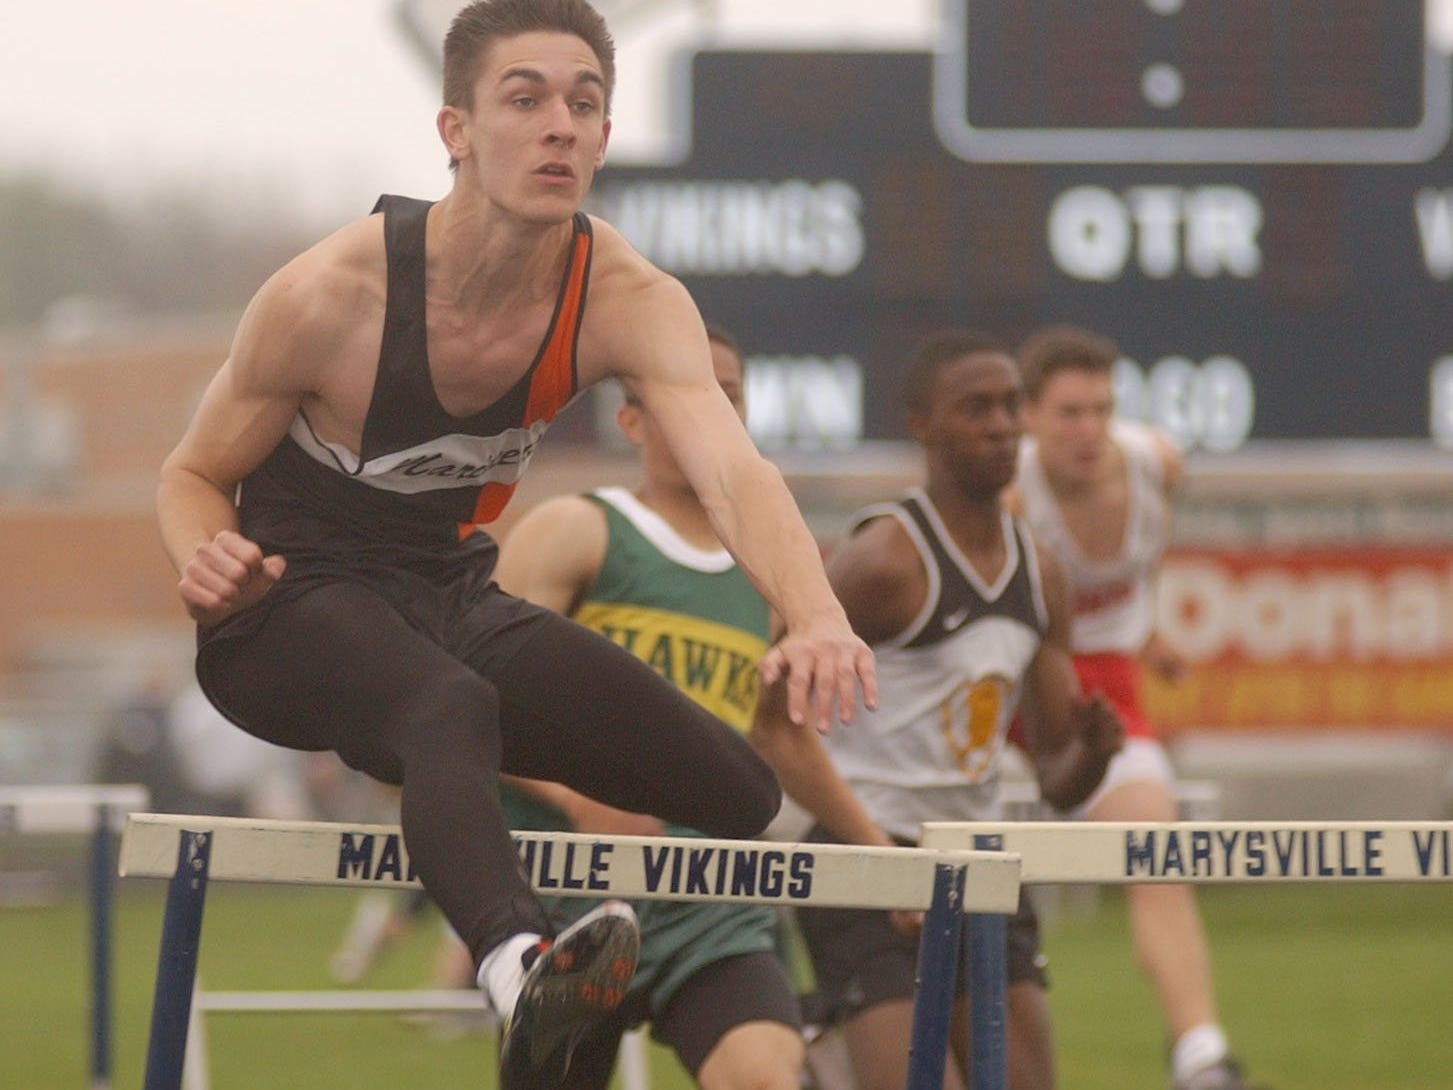 Marine City's Rich LaCroix holds the Blue Water Meet of Champions record in the 110 hurdles, running 14.3 in 2003.